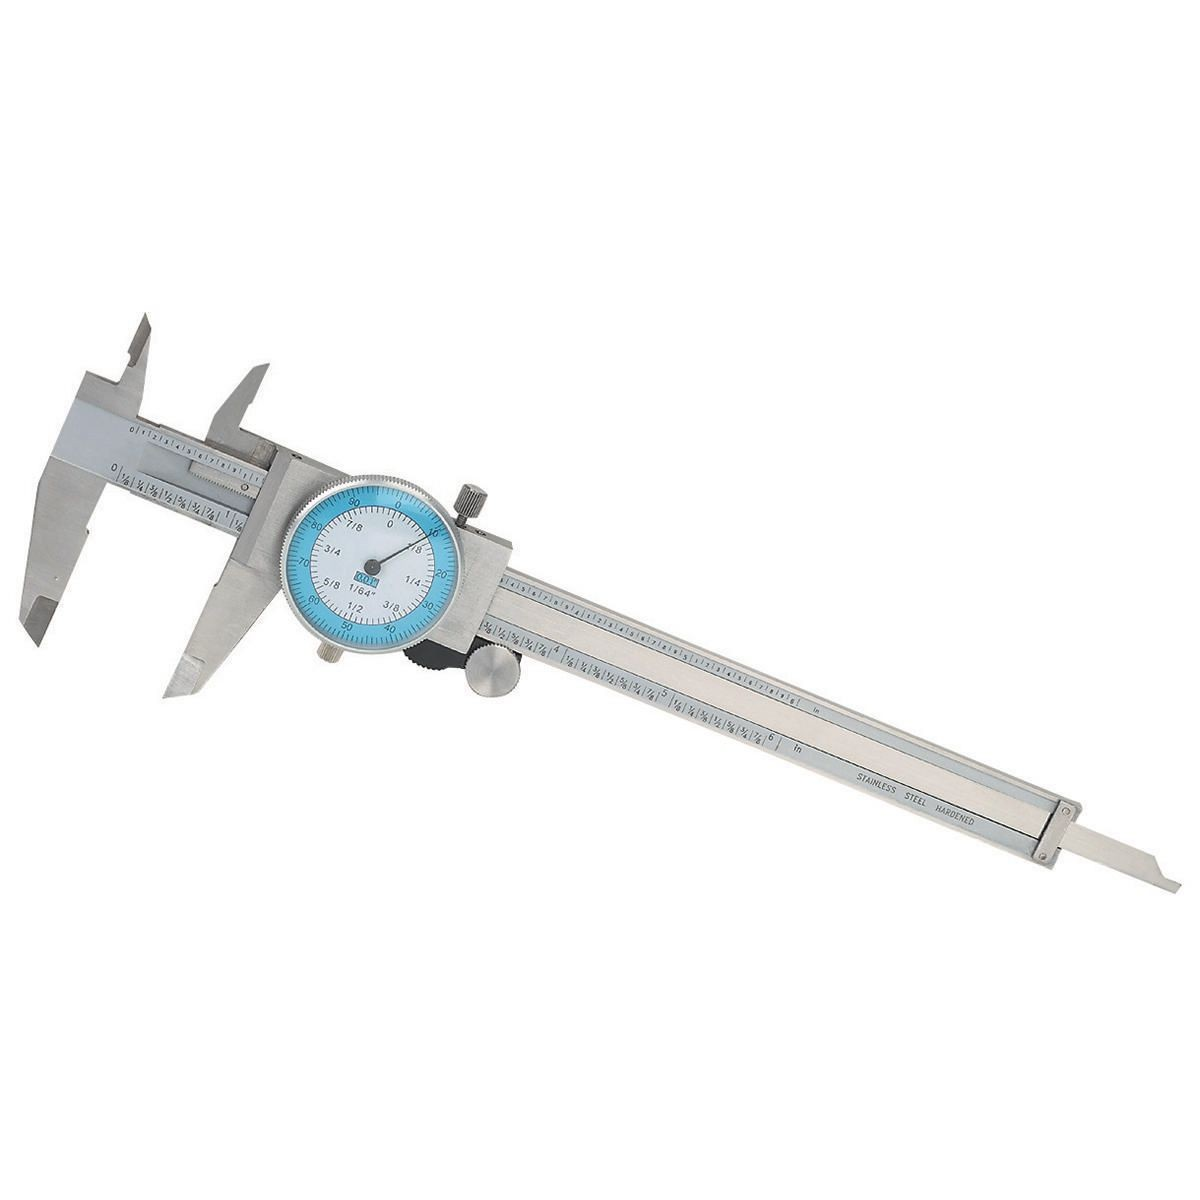 6 In. Fractional Dial Caliper